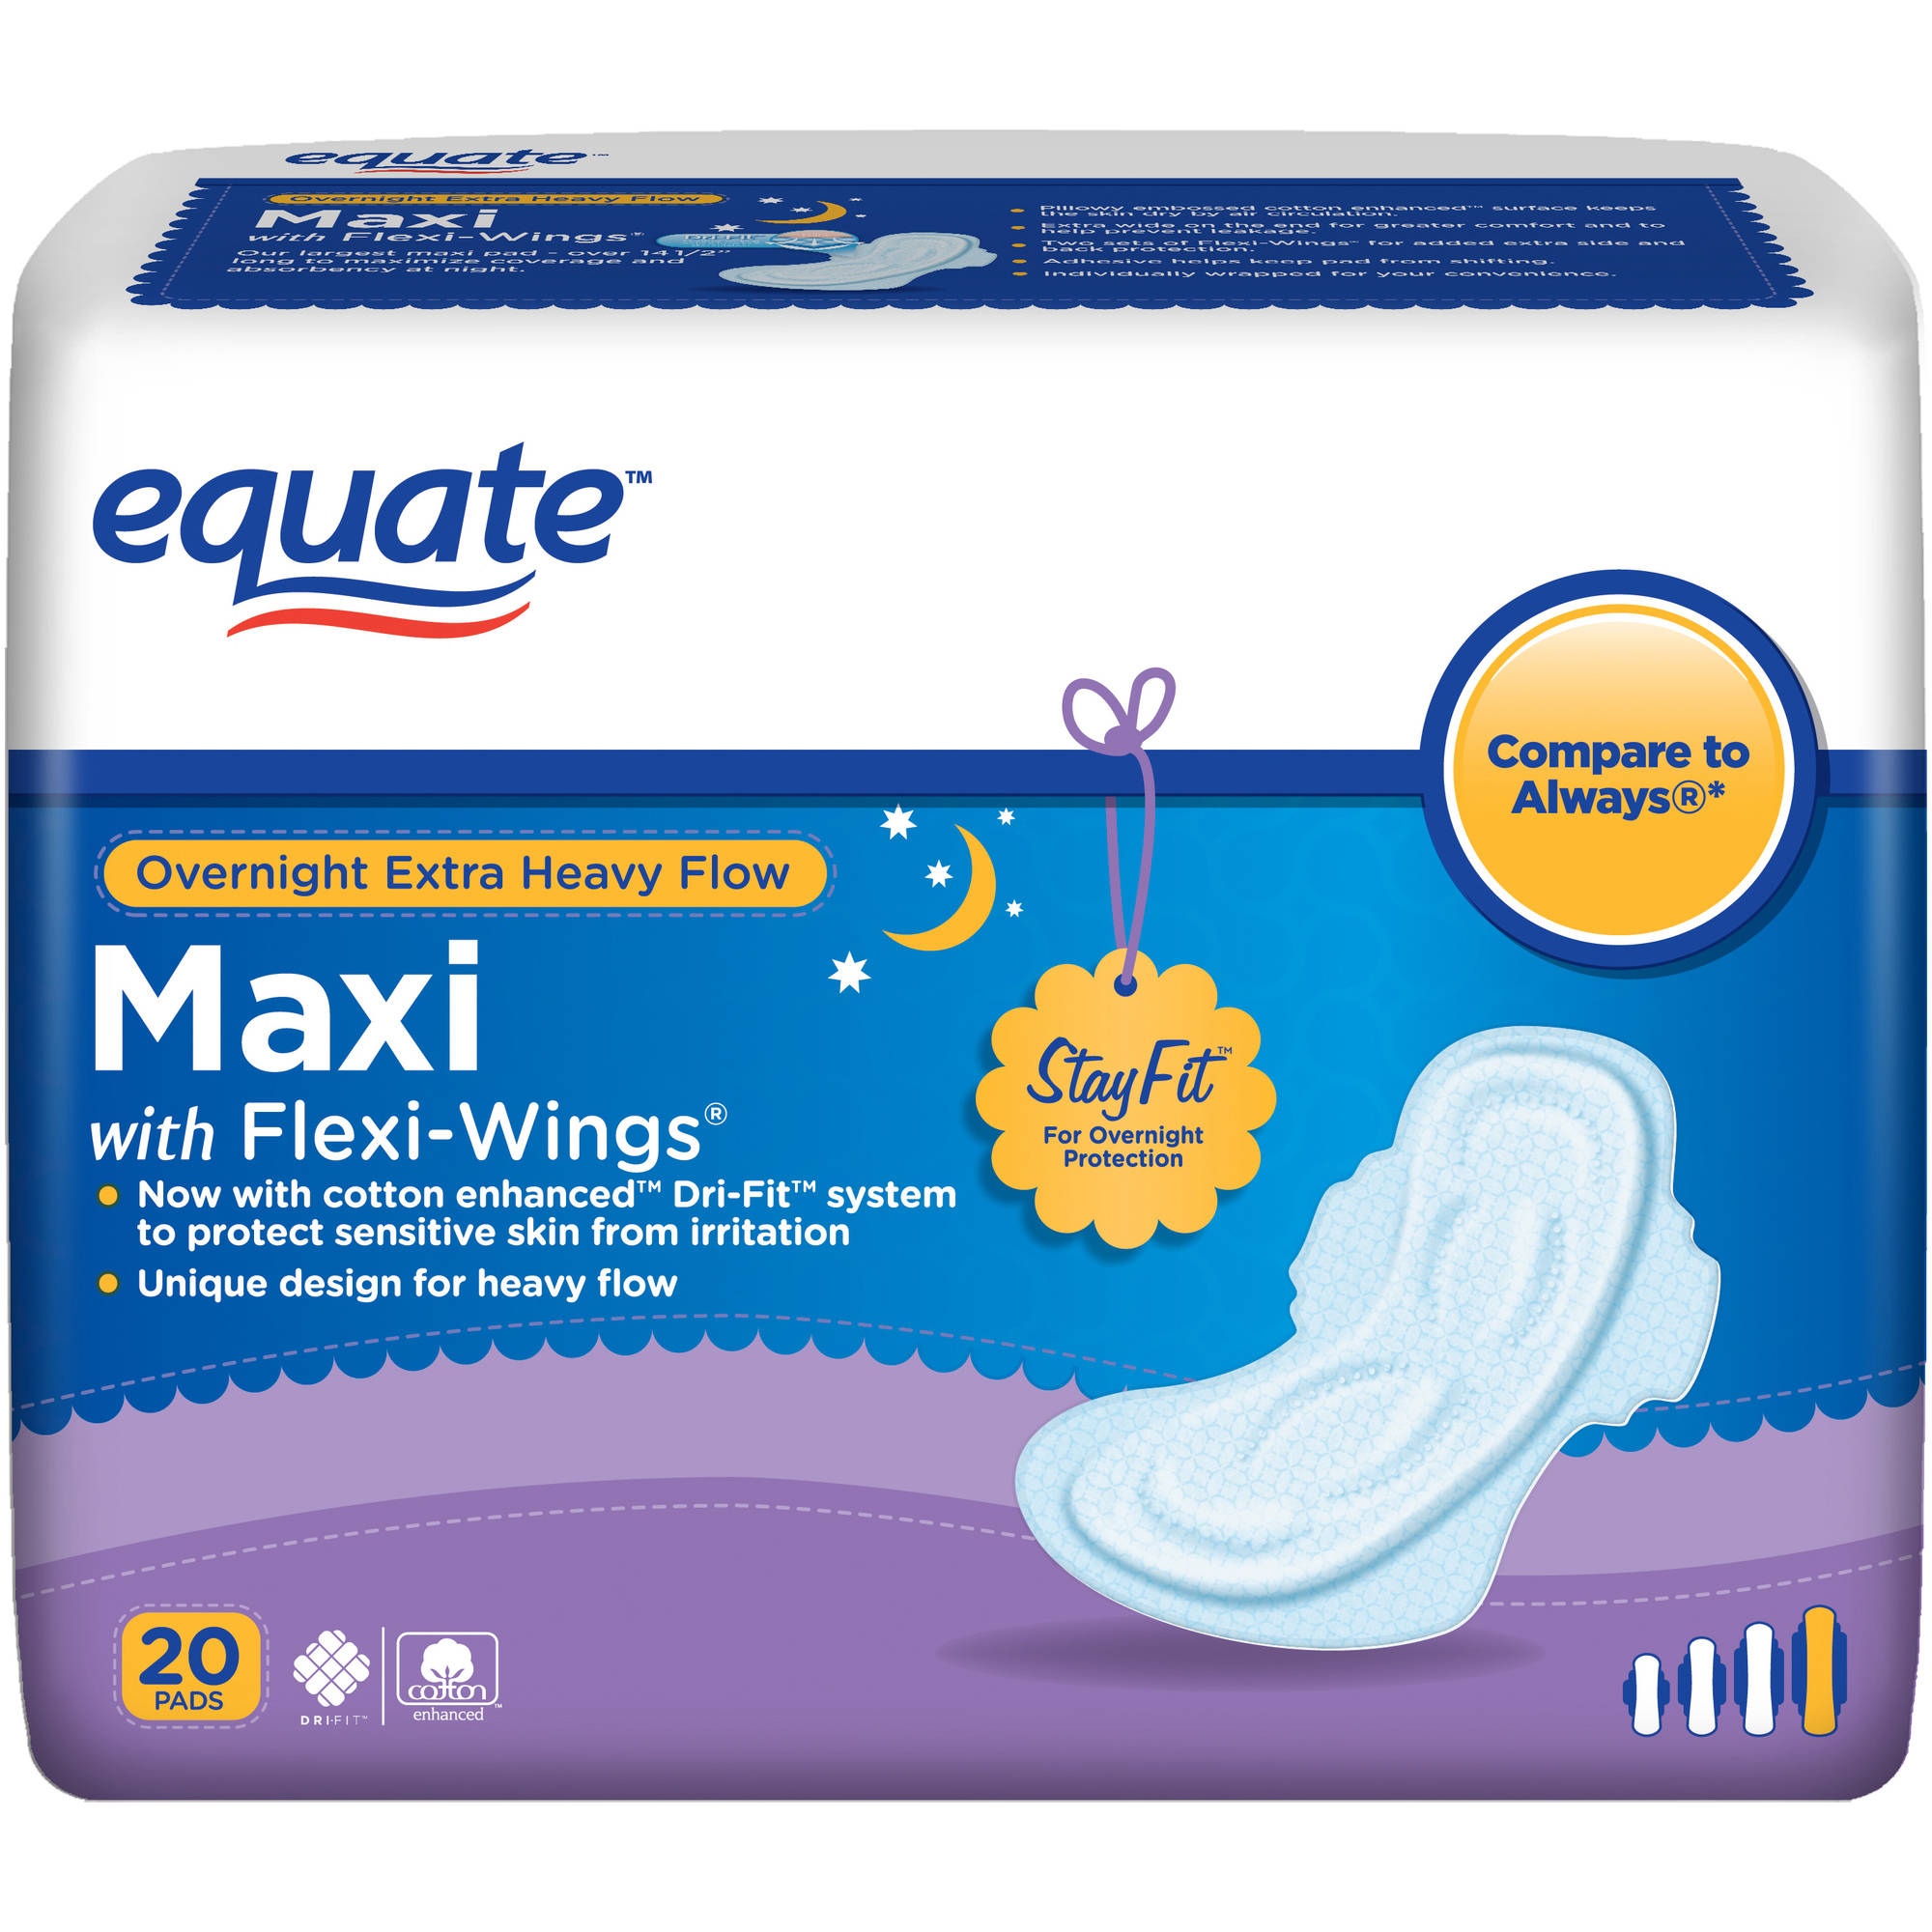 Equate Overnight Extra Heavy Flow Maxi Pads with Flexi-Wings, 20 count